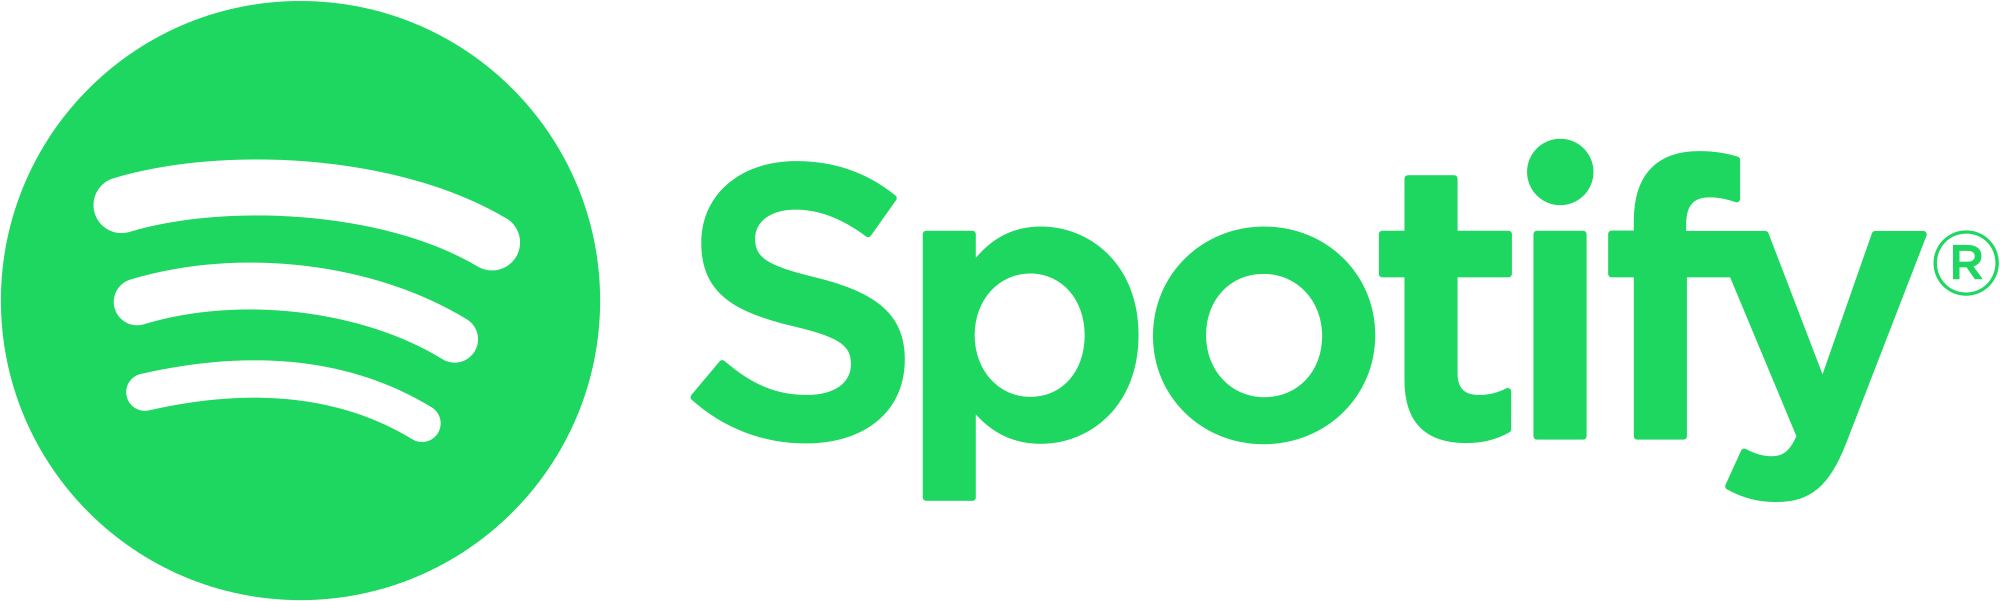 2000x601 Filespotify Logo With Text.svg